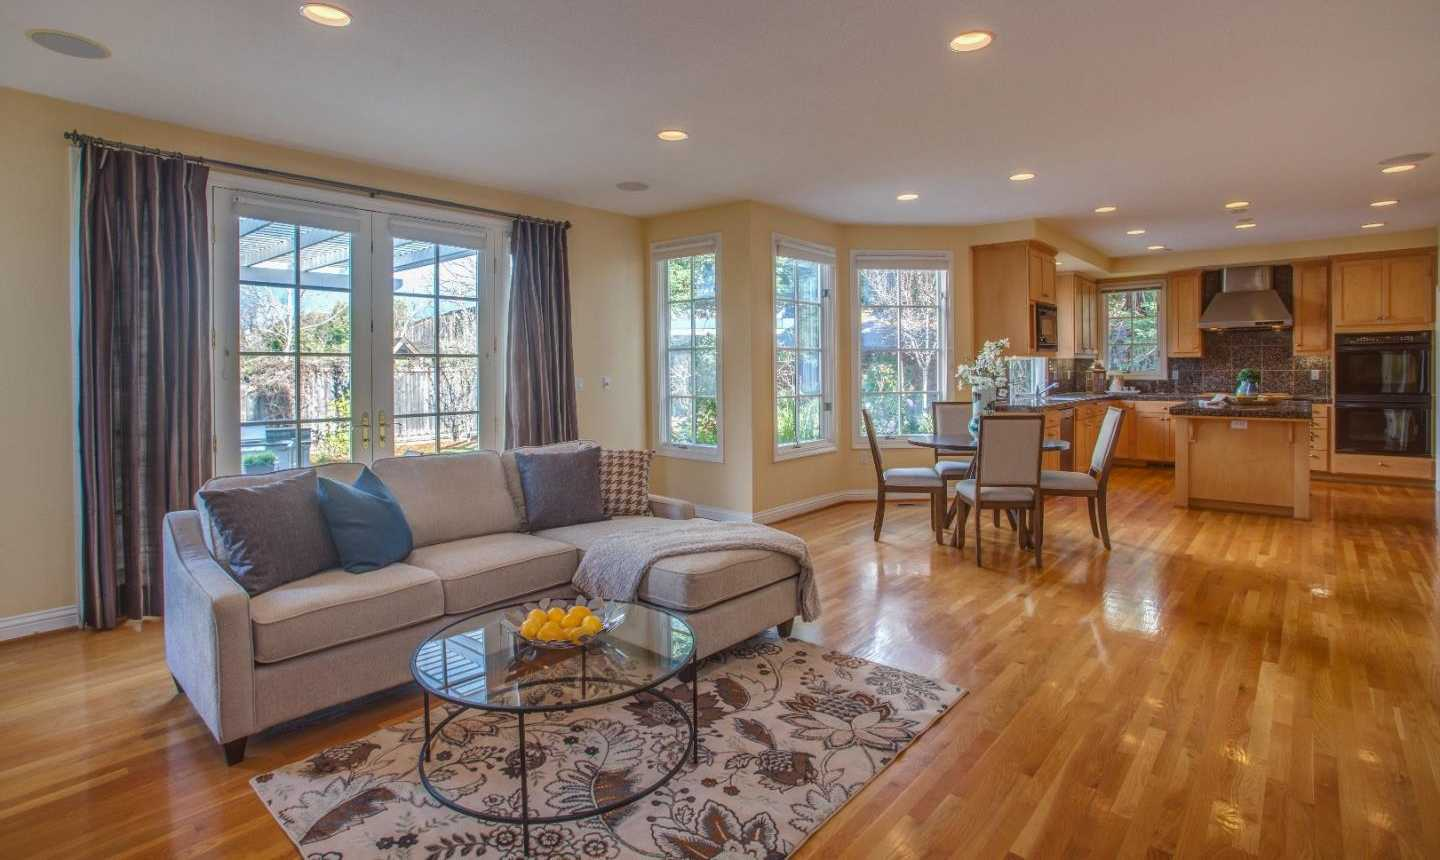 $2,998,000 - 5Br/4Ba -  for Sale in Cupertino